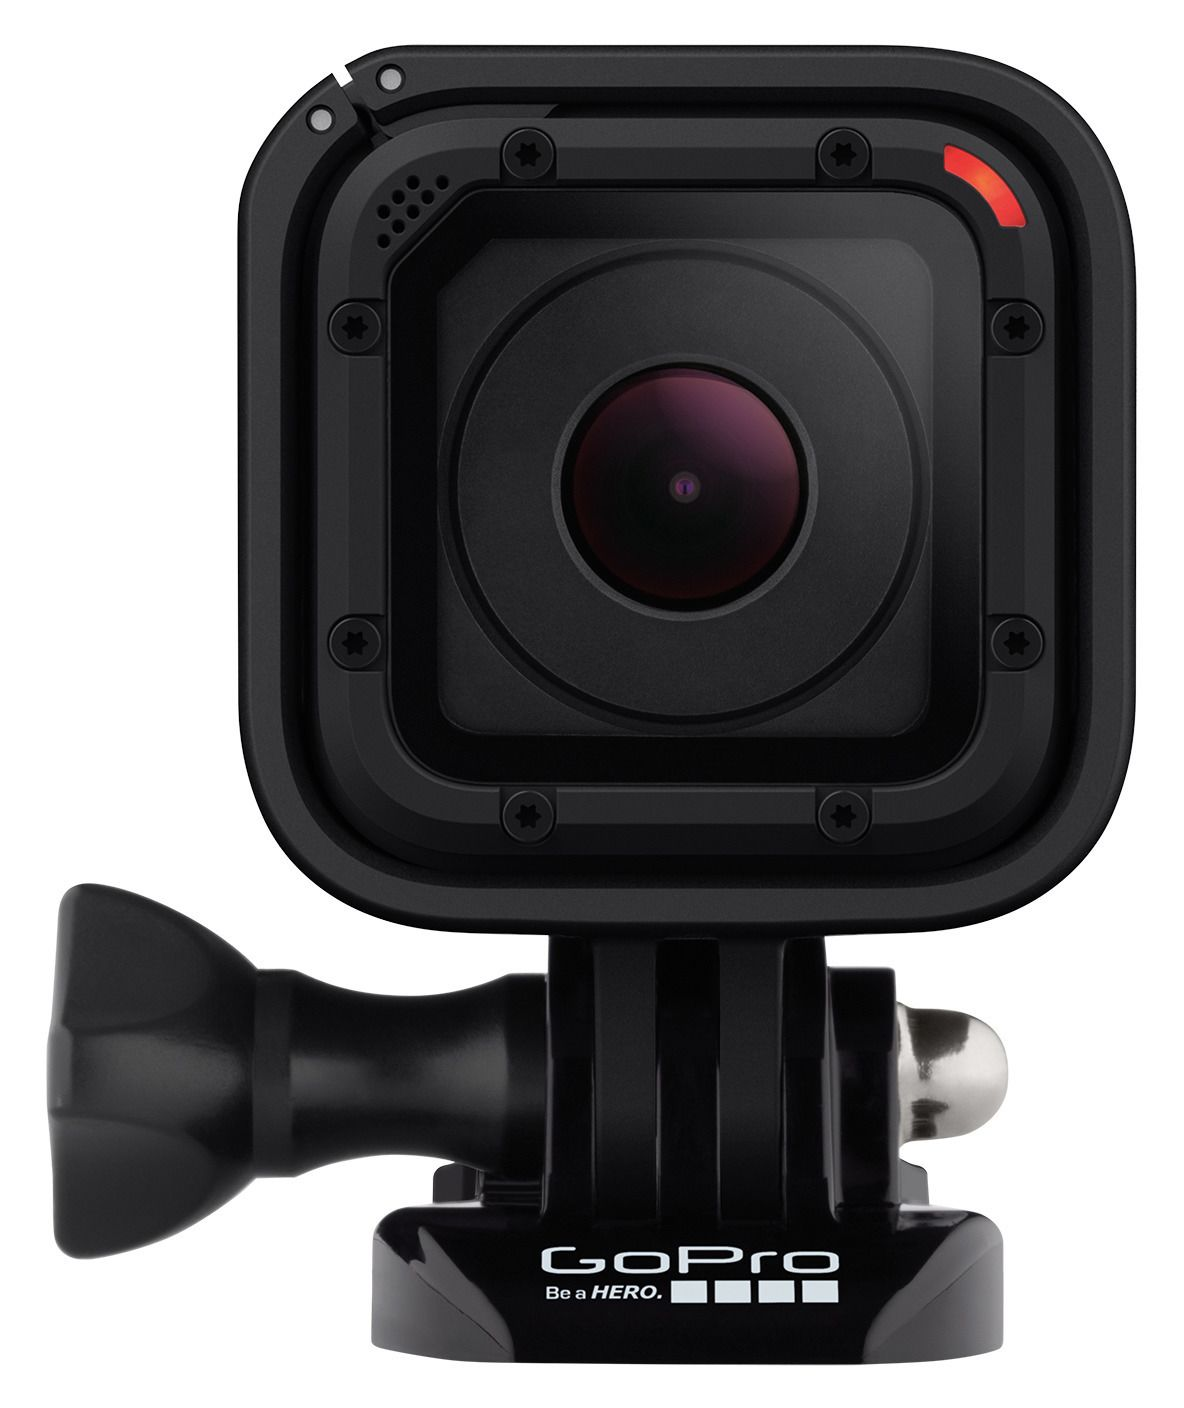 gopro hero4 session camera revzilla. Black Bedroom Furniture Sets. Home Design Ideas